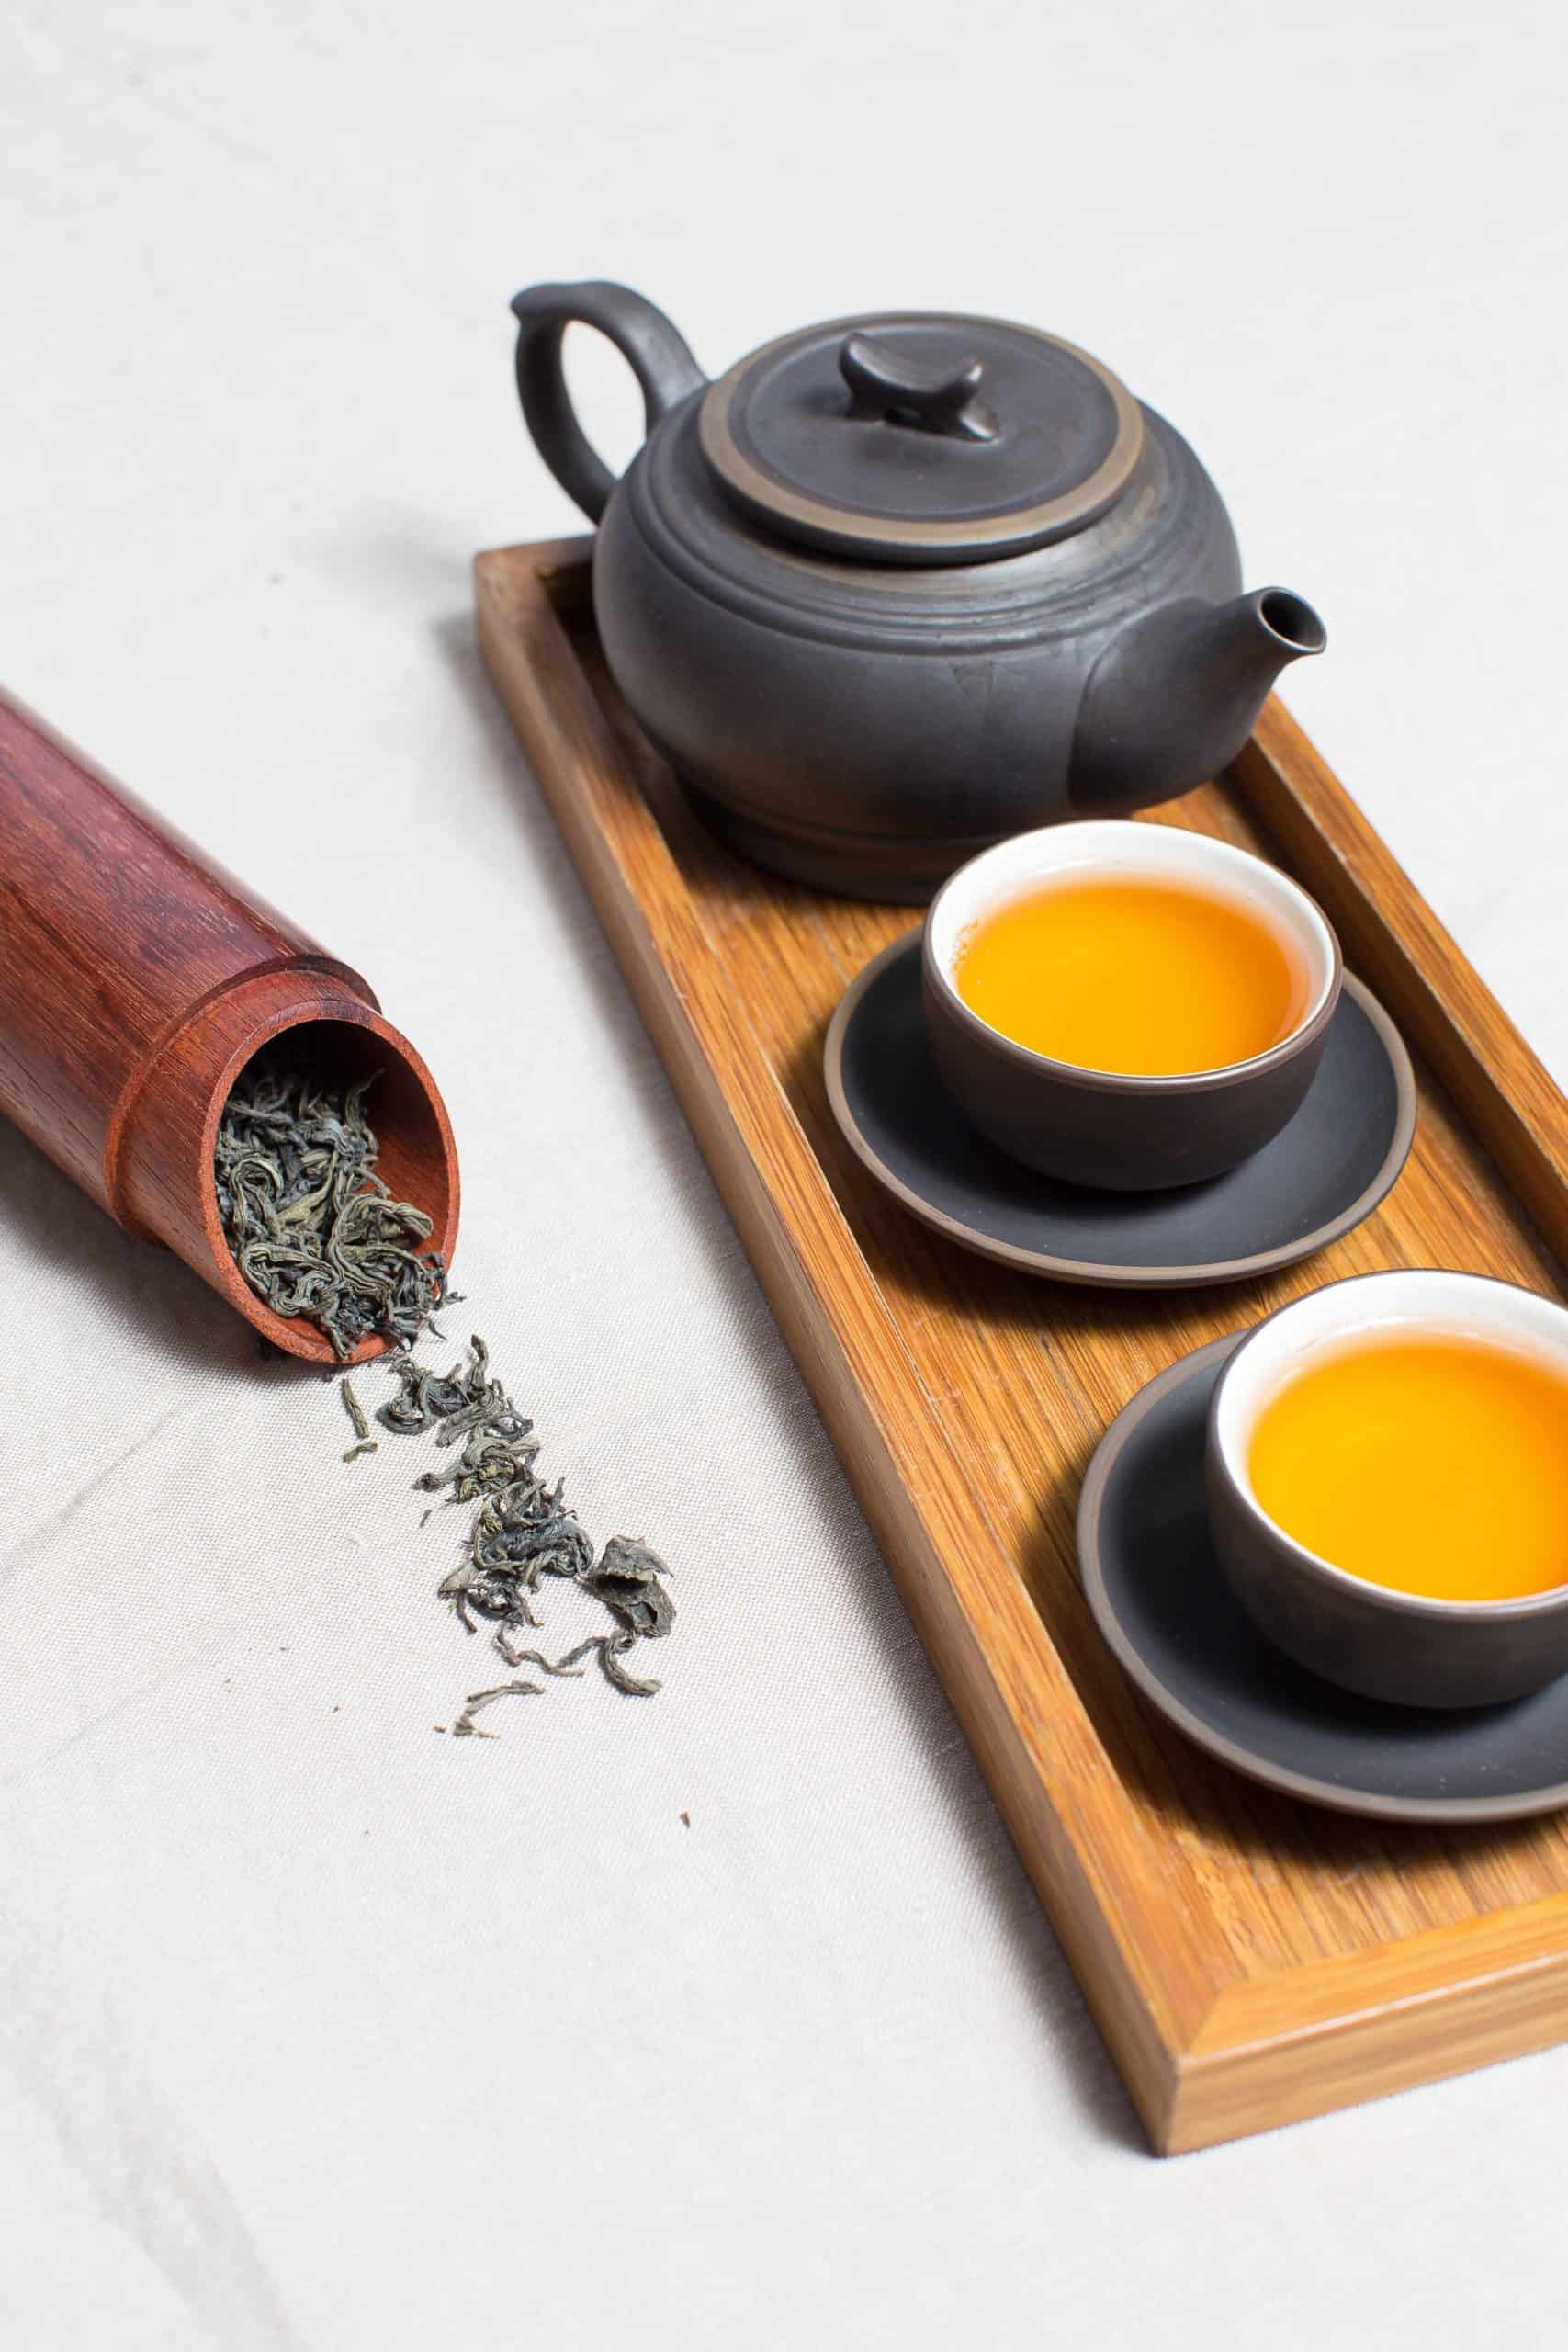 Most Famous Chinese Tea And Where To Find Them